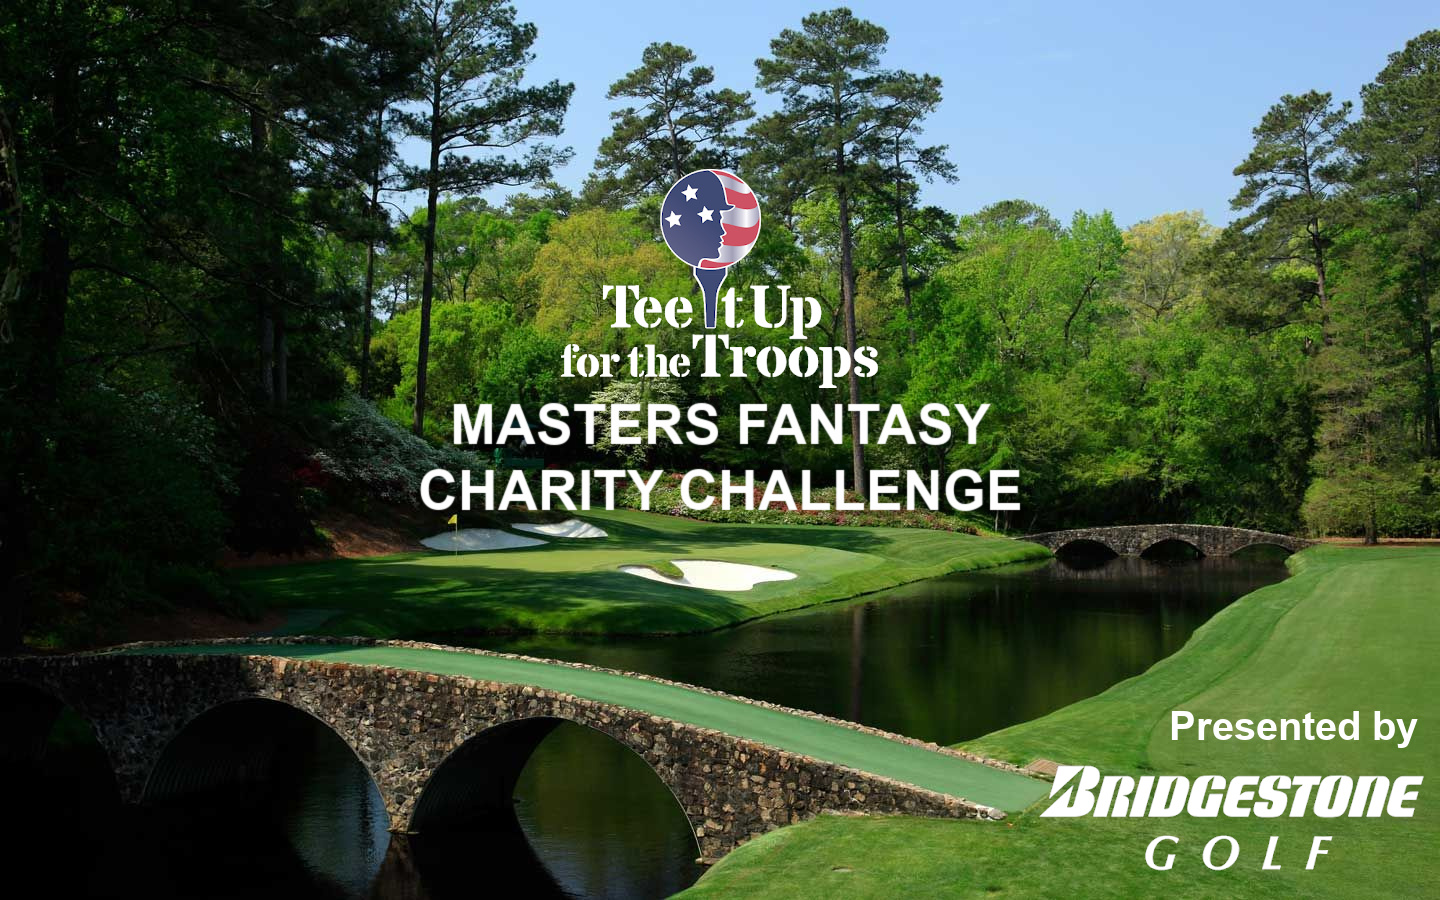 Tee It Up for the Troops MASTERS Fantasy Challenge presented by Bridgestone Golf